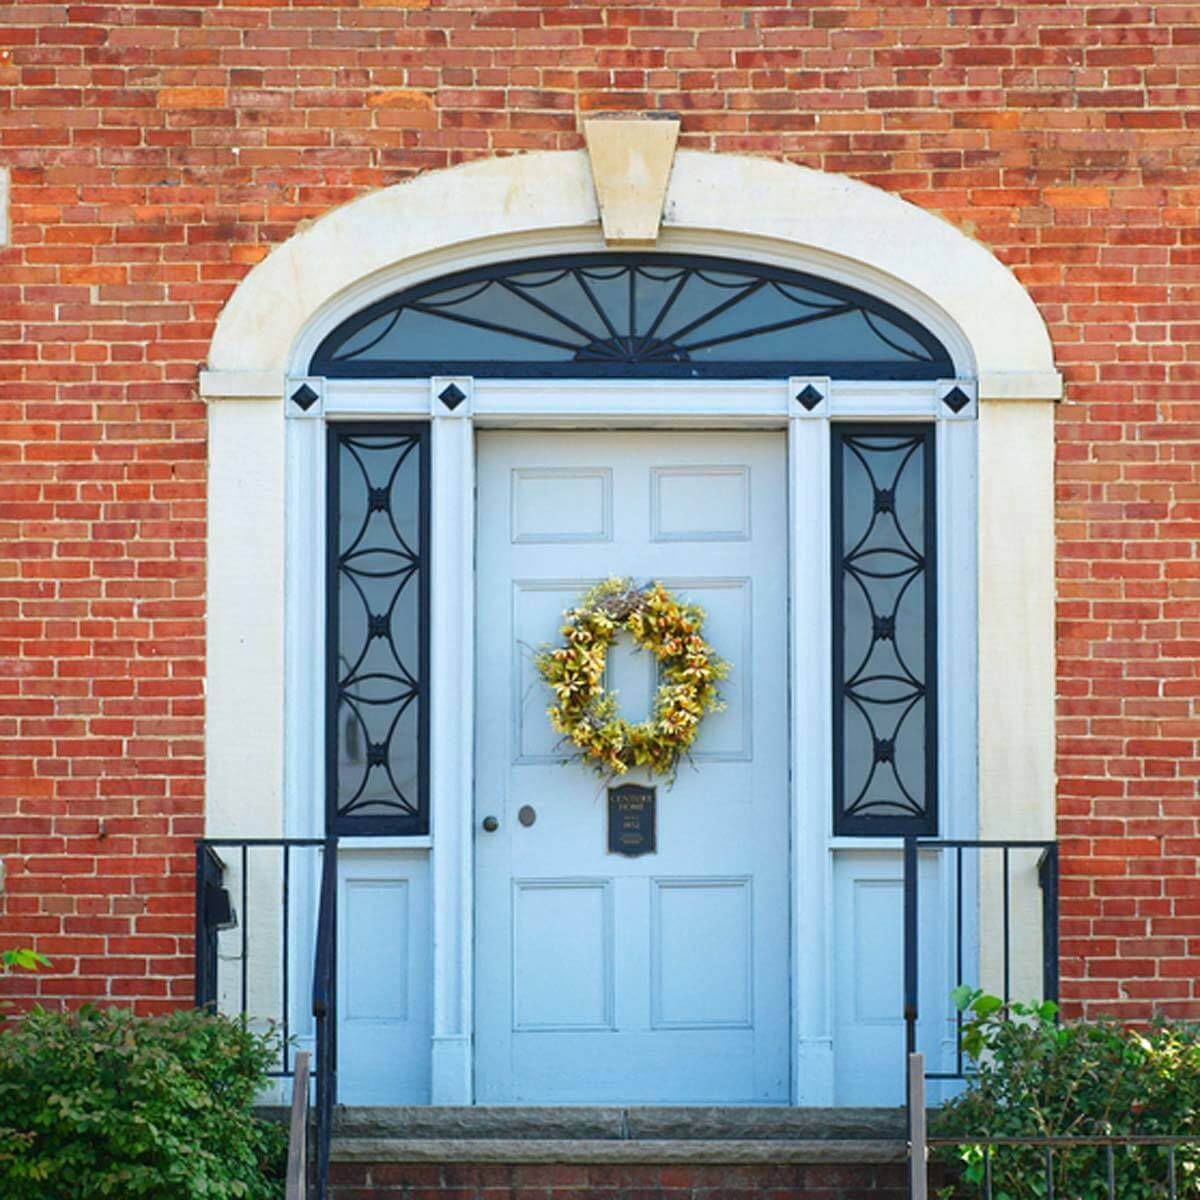 wreath on front door brick home